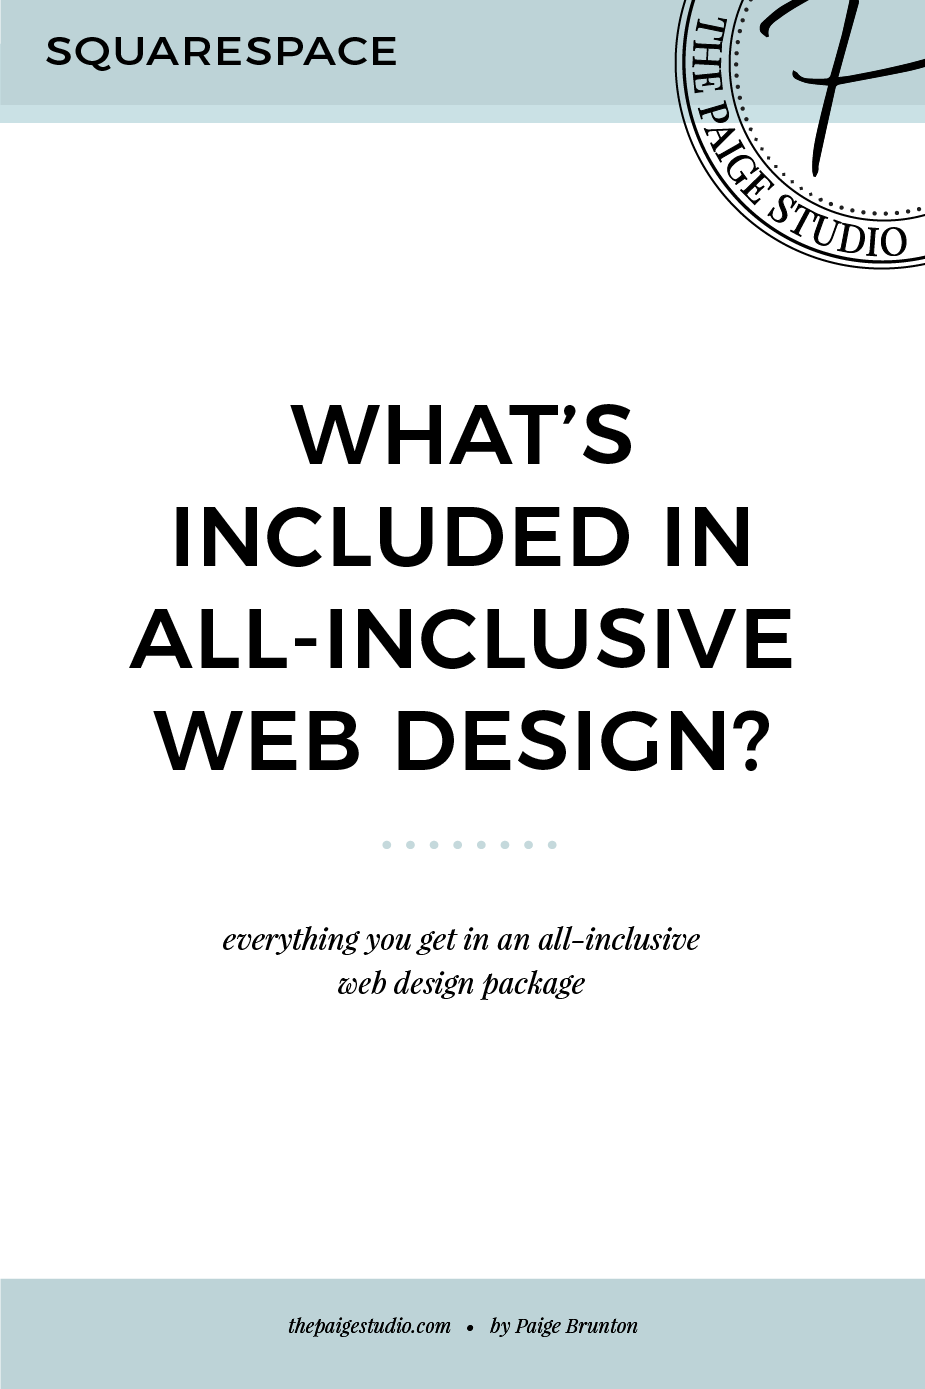 What S Included In All Inclusive Squarespace Web Design Packages Paige Brunton Squarespace Templates Squarespace Designer Courses